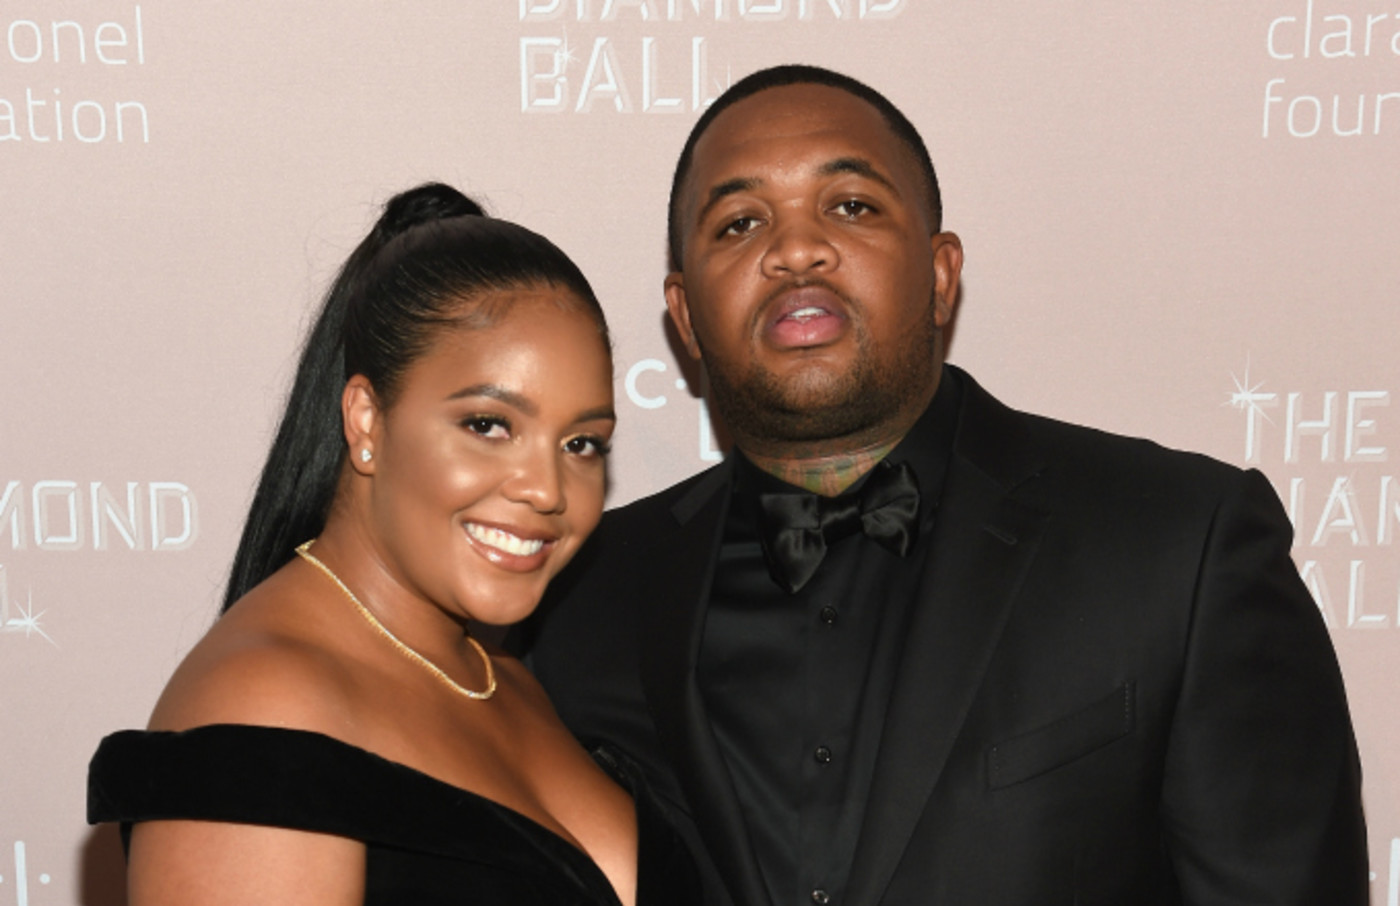 Dj Mustard and Chanel Thierry at Diamond Ball